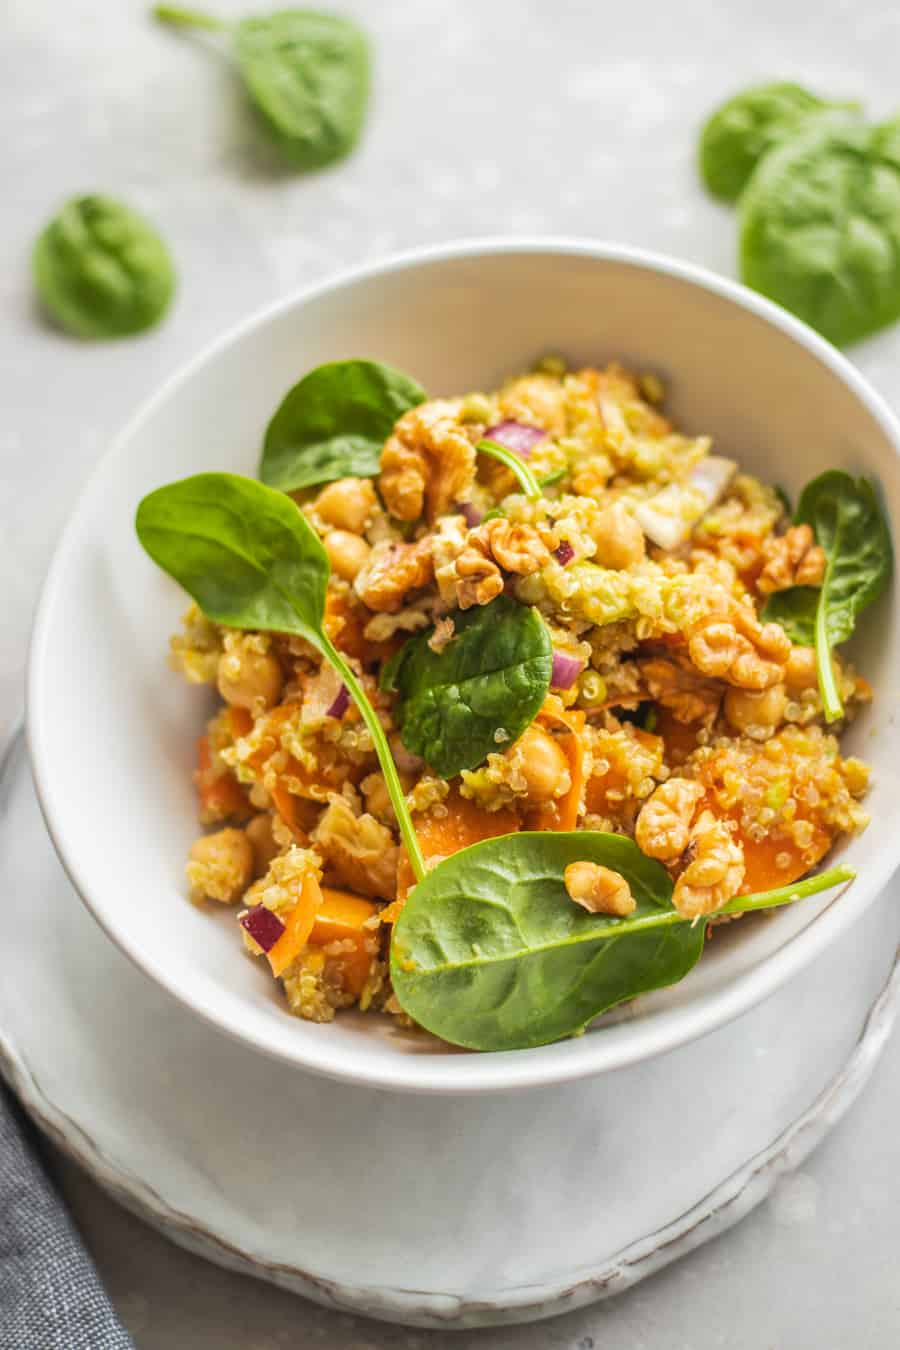 Vegan autumn salad with pumpkin, quinoa and chickpeas